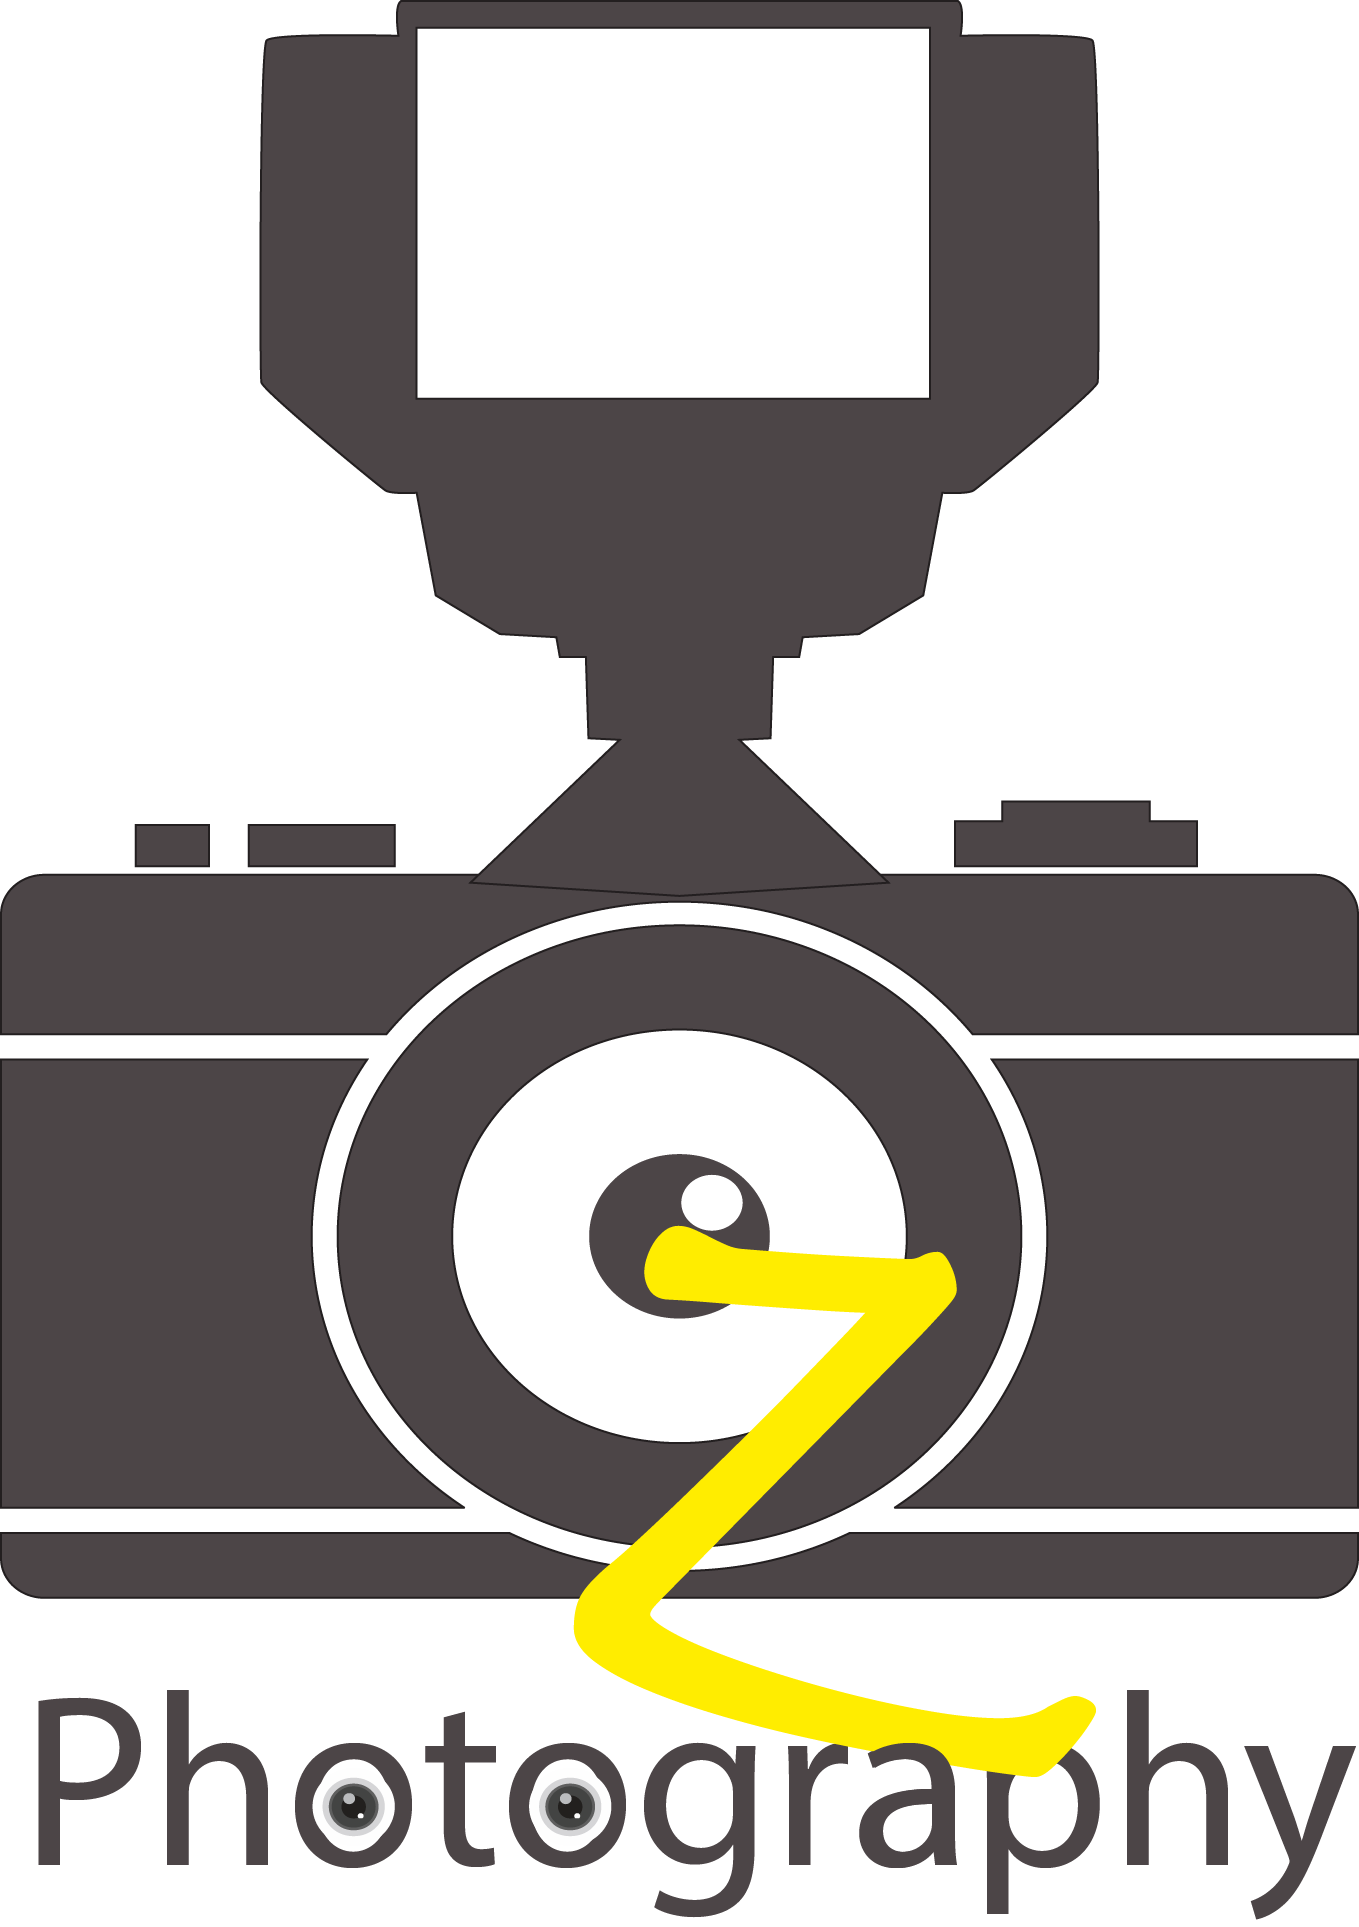 Photography clipart cinema camera. Photographer logo photo studio